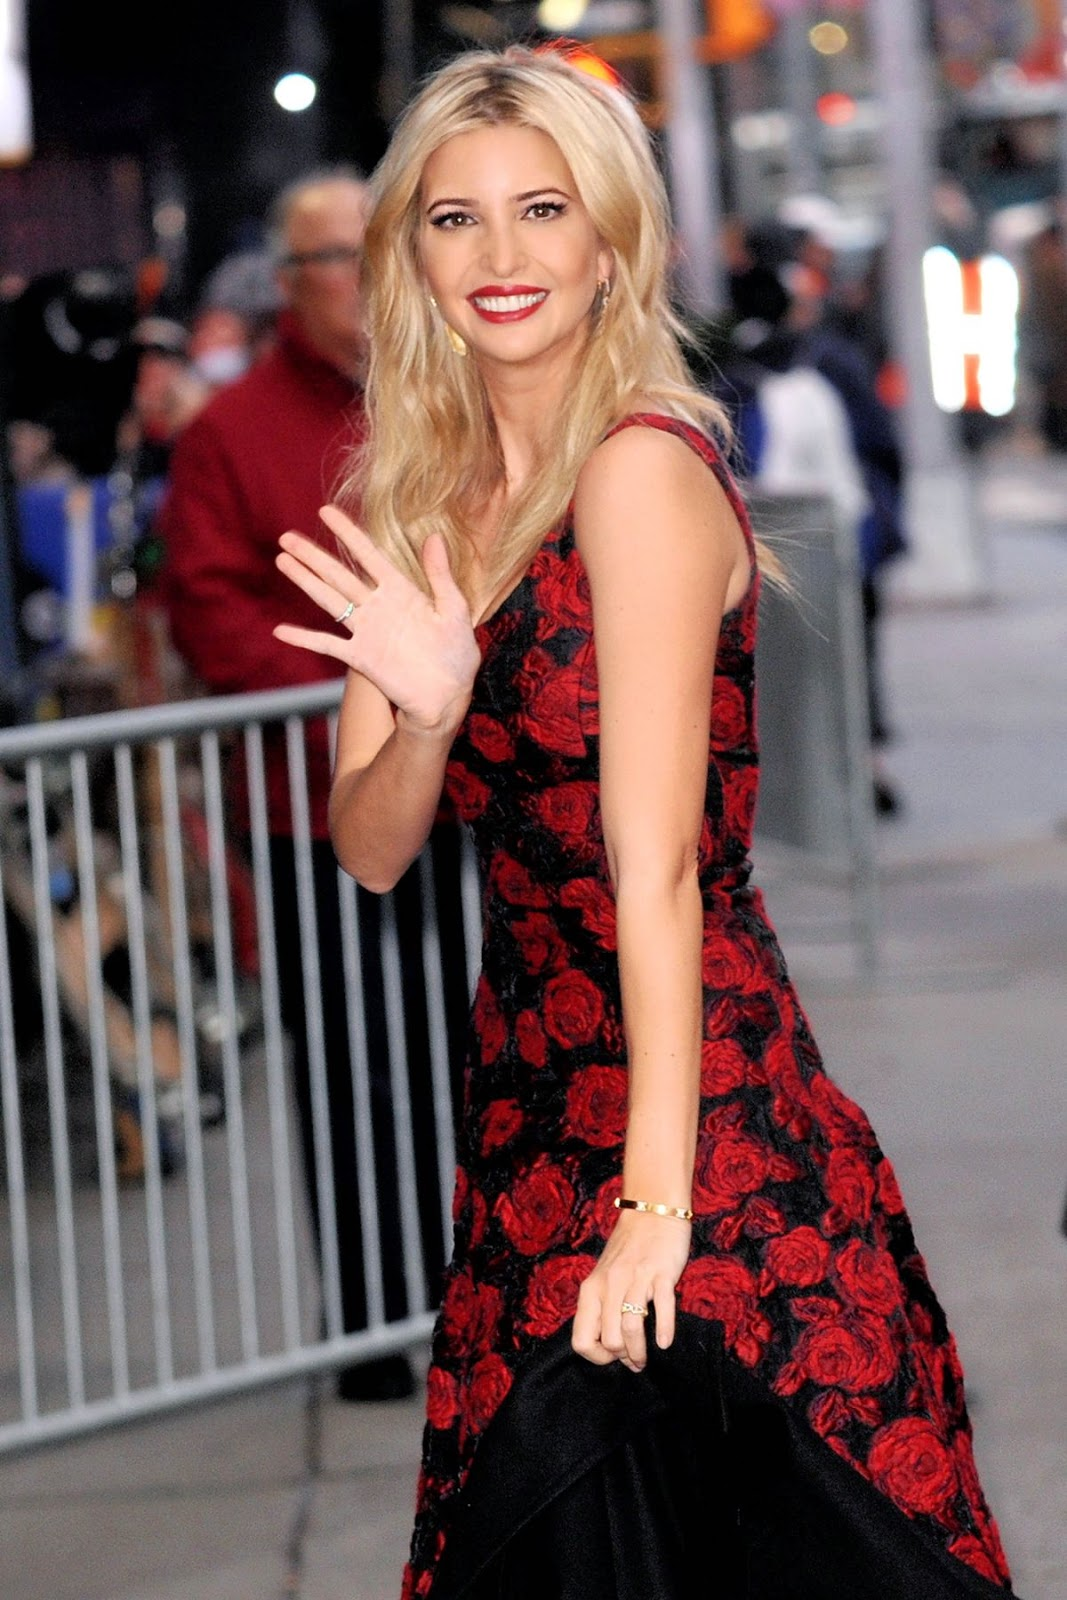 HQ Photos of Ivanka Trump in Hot Red Dress at in New York